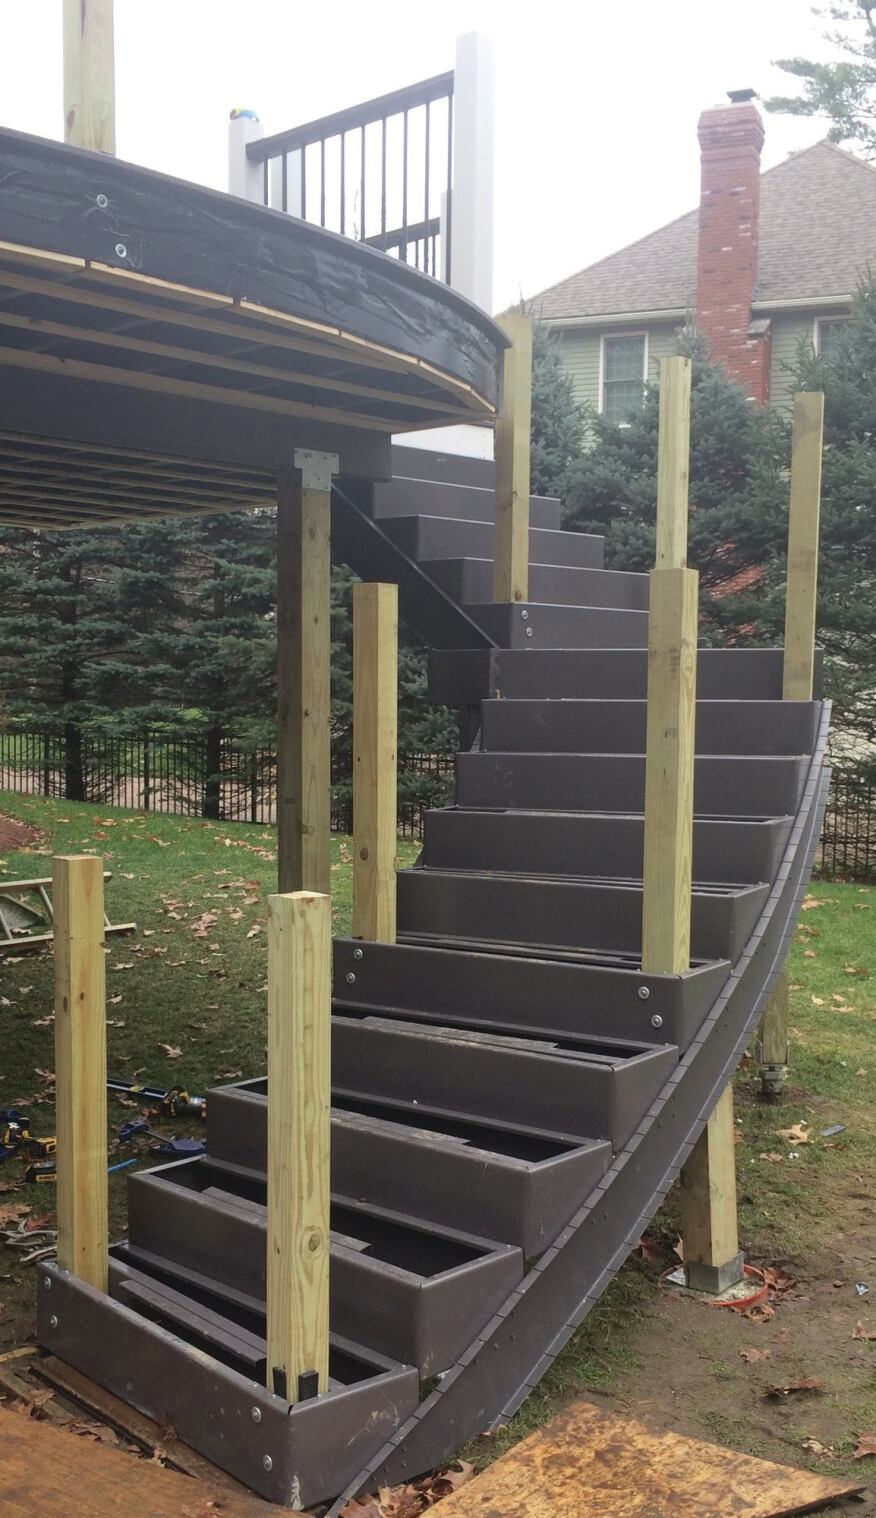 The lower run of stairs curves to match the curve of the deck. The stringer tracks needed to be kerfed so that they could be bent to the proper radius.